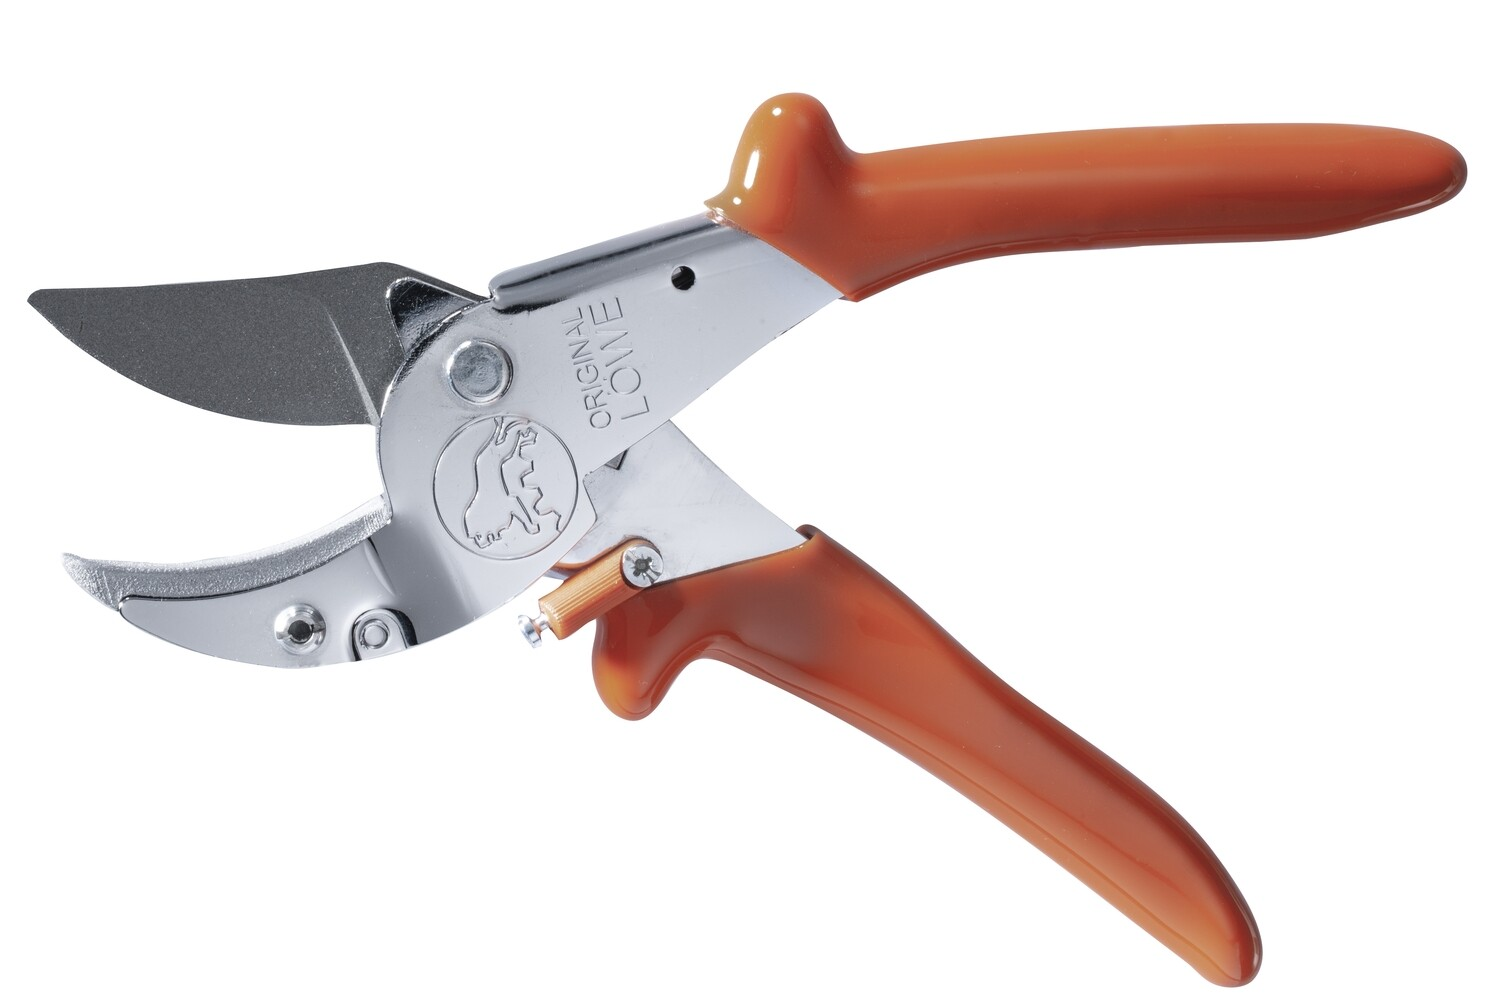 LÖWE 10.107 Anvil/bypass ergonomic pruner with curved blade